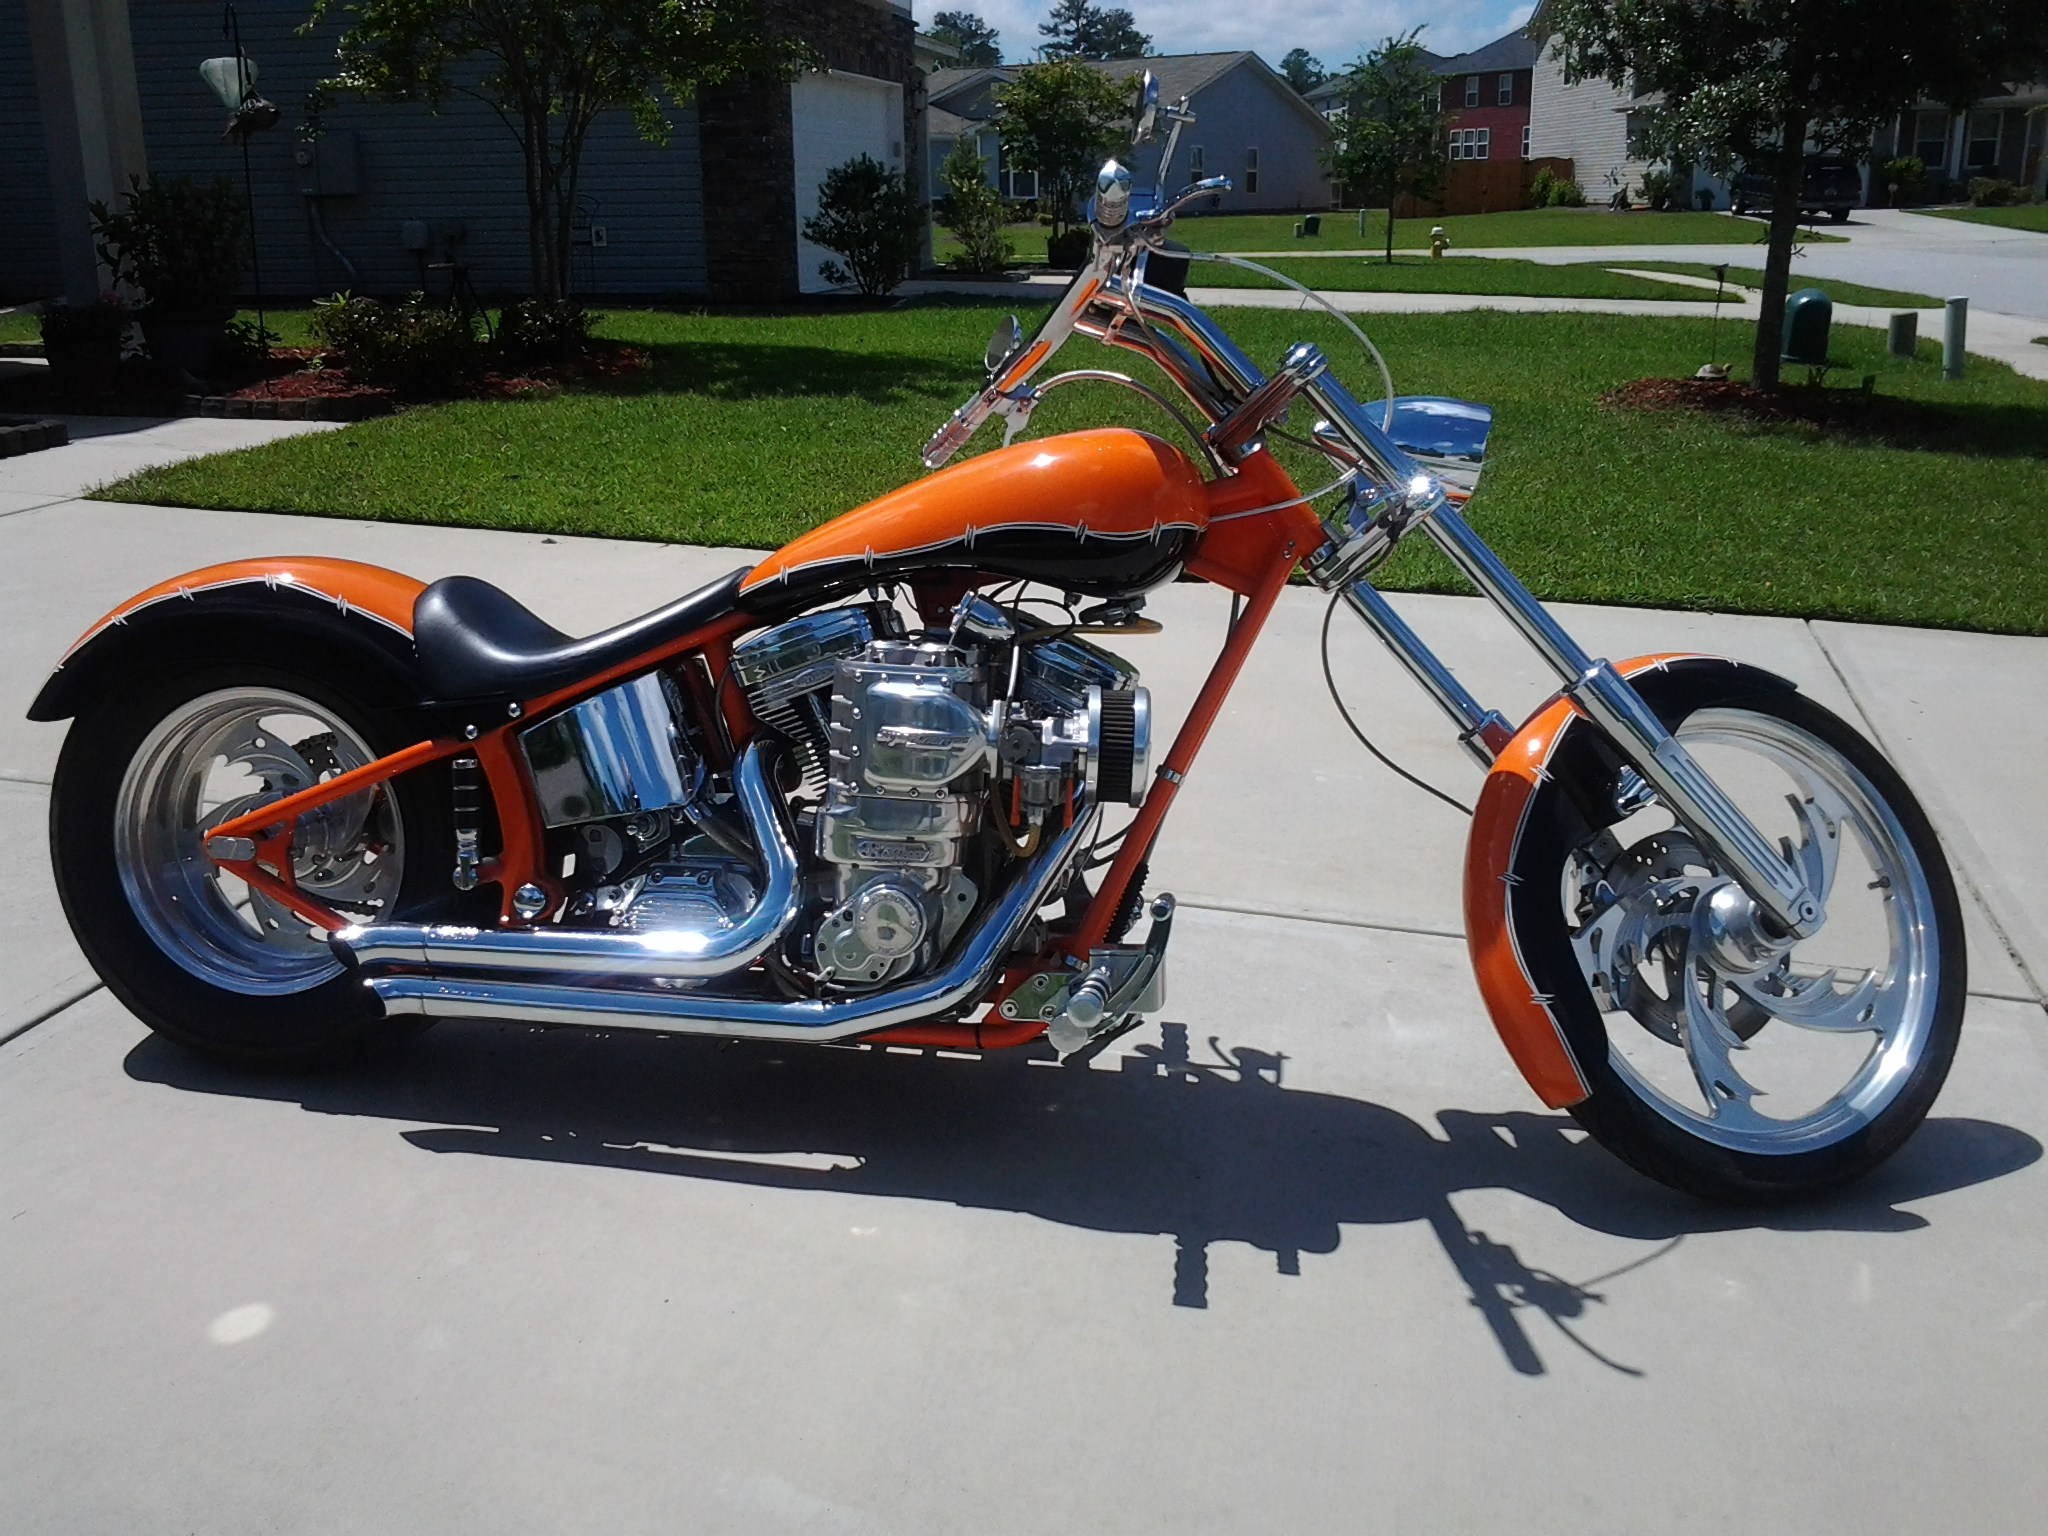 Las Vegas Motorcycle >> 2004 Harley-Davidson® Custom (Orange/Black), Hanahan, South Carolina (363786) | ChopperExchange